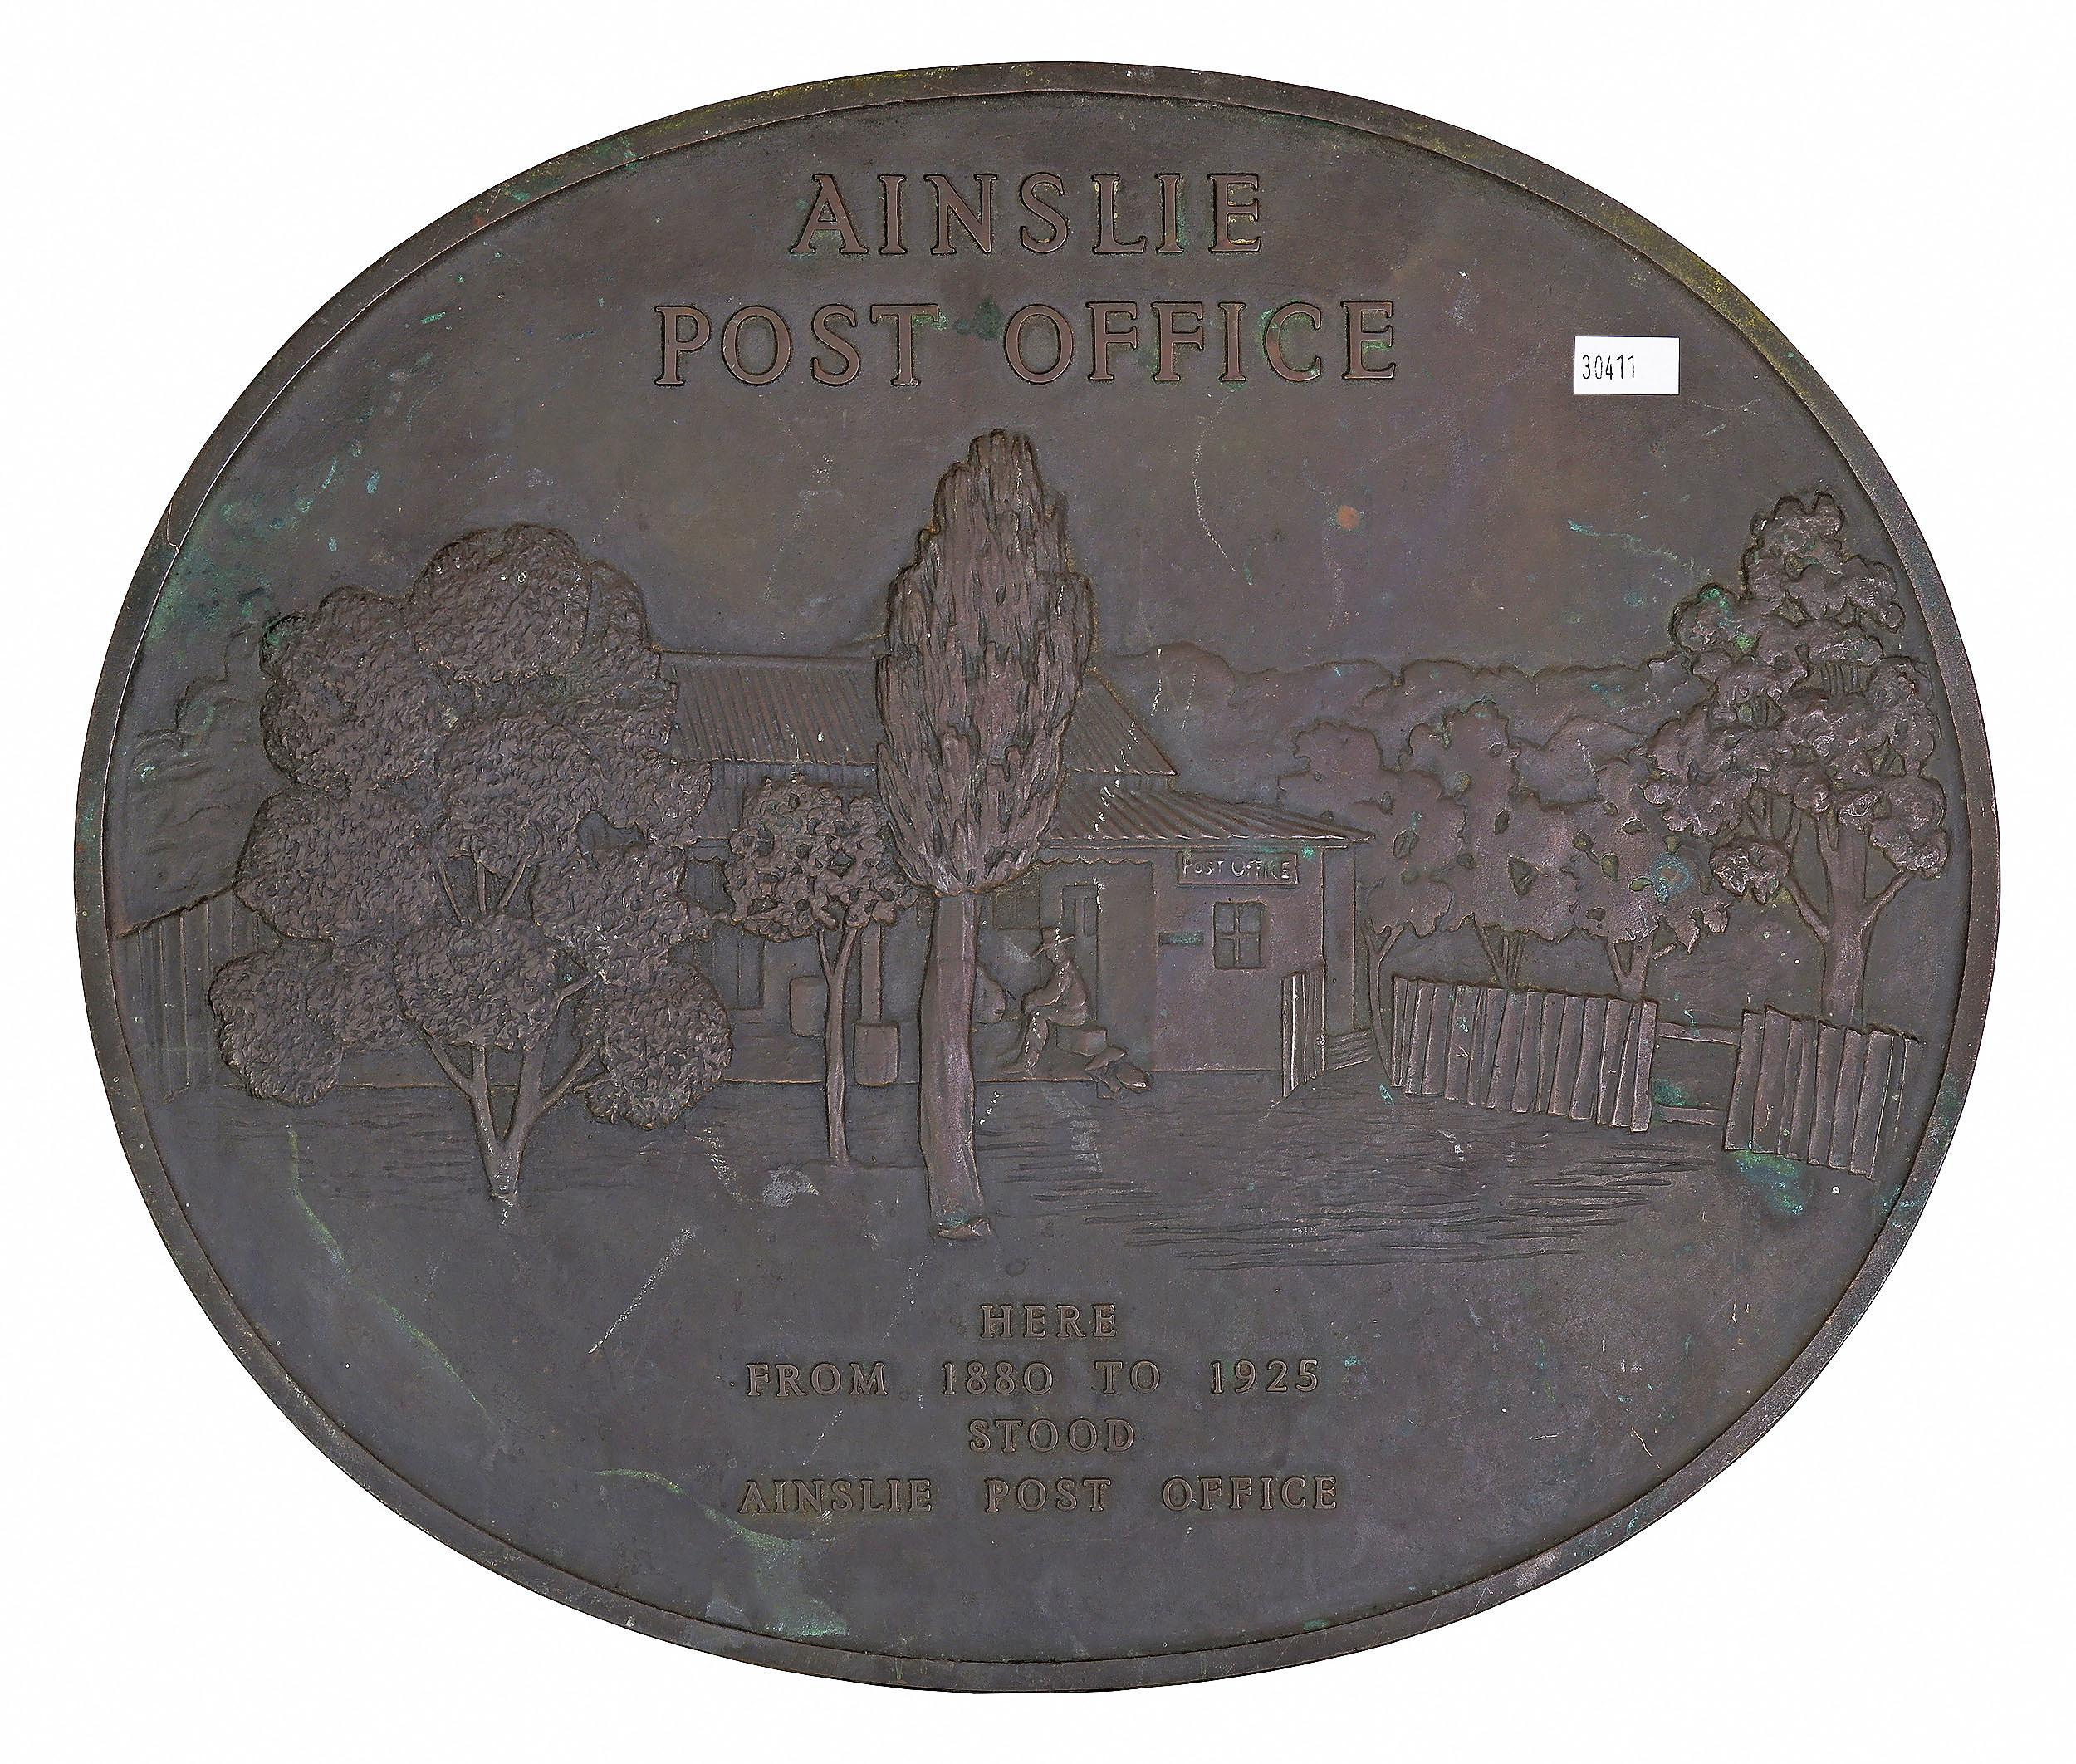 'Relief Cast Bronze Plaque Commemerating the Location of the Ainslie Post Office'